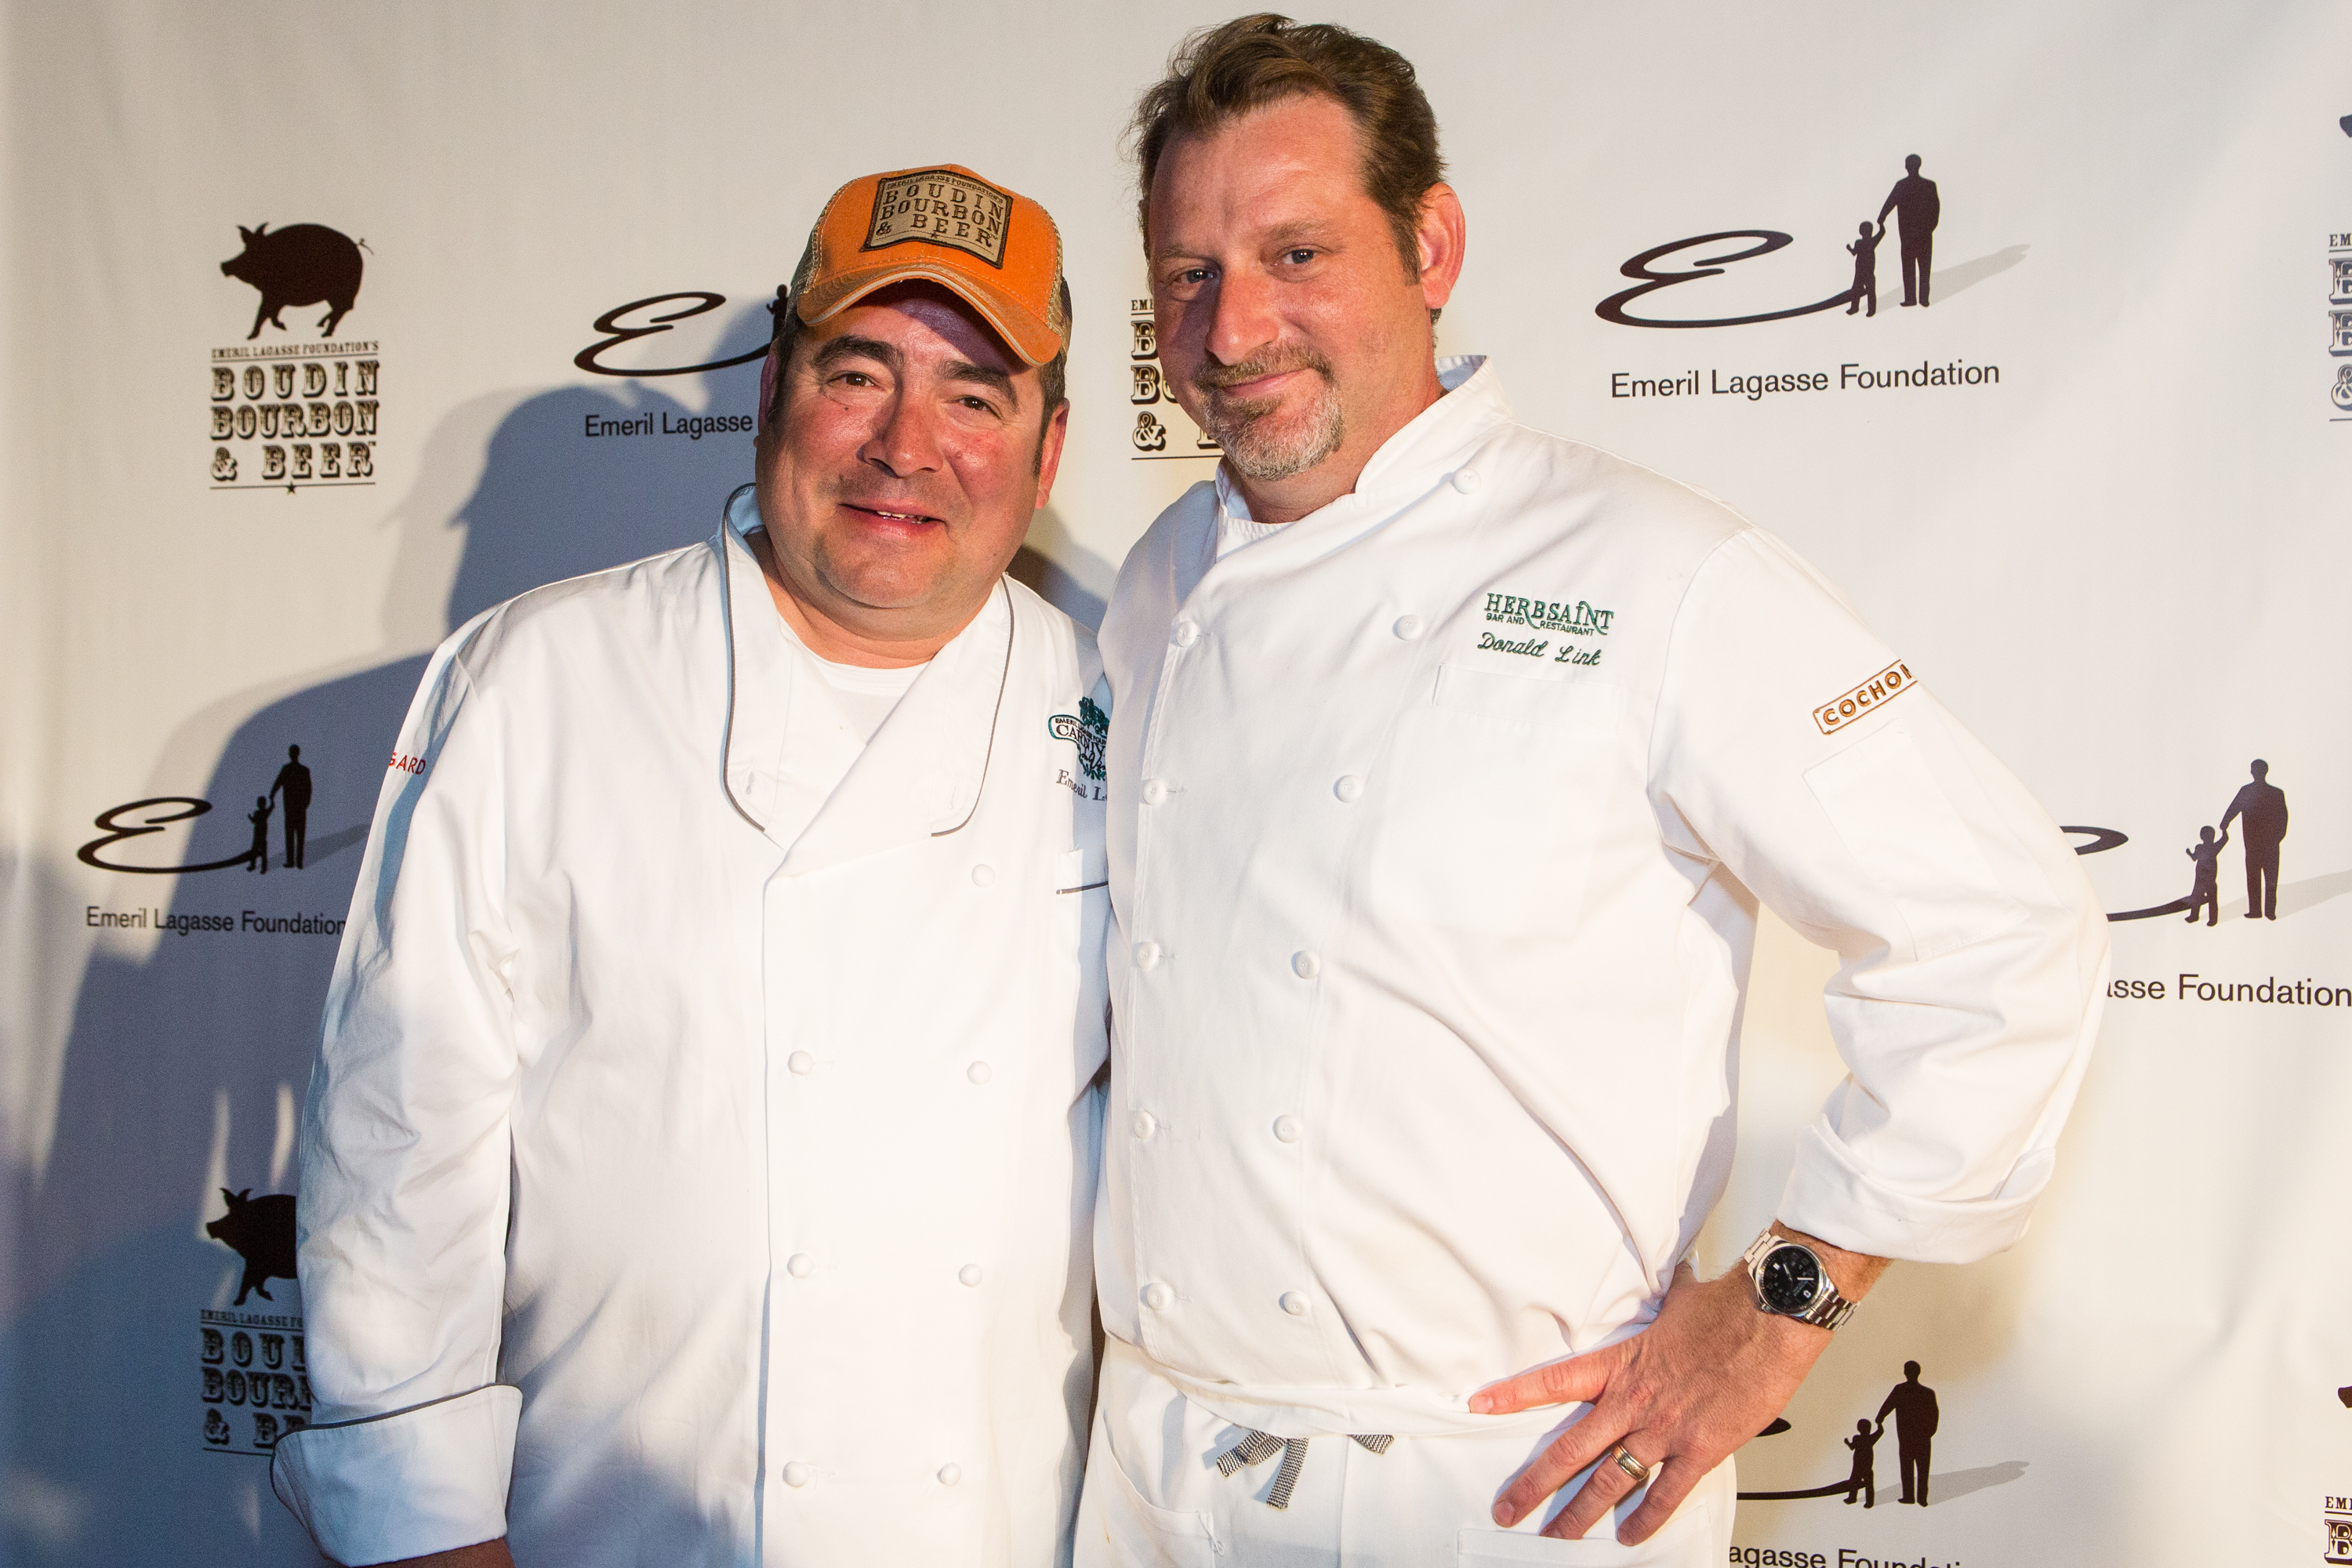 Emeril Lagasse and Donald Link at Boudin Bourbon & Beer 2013